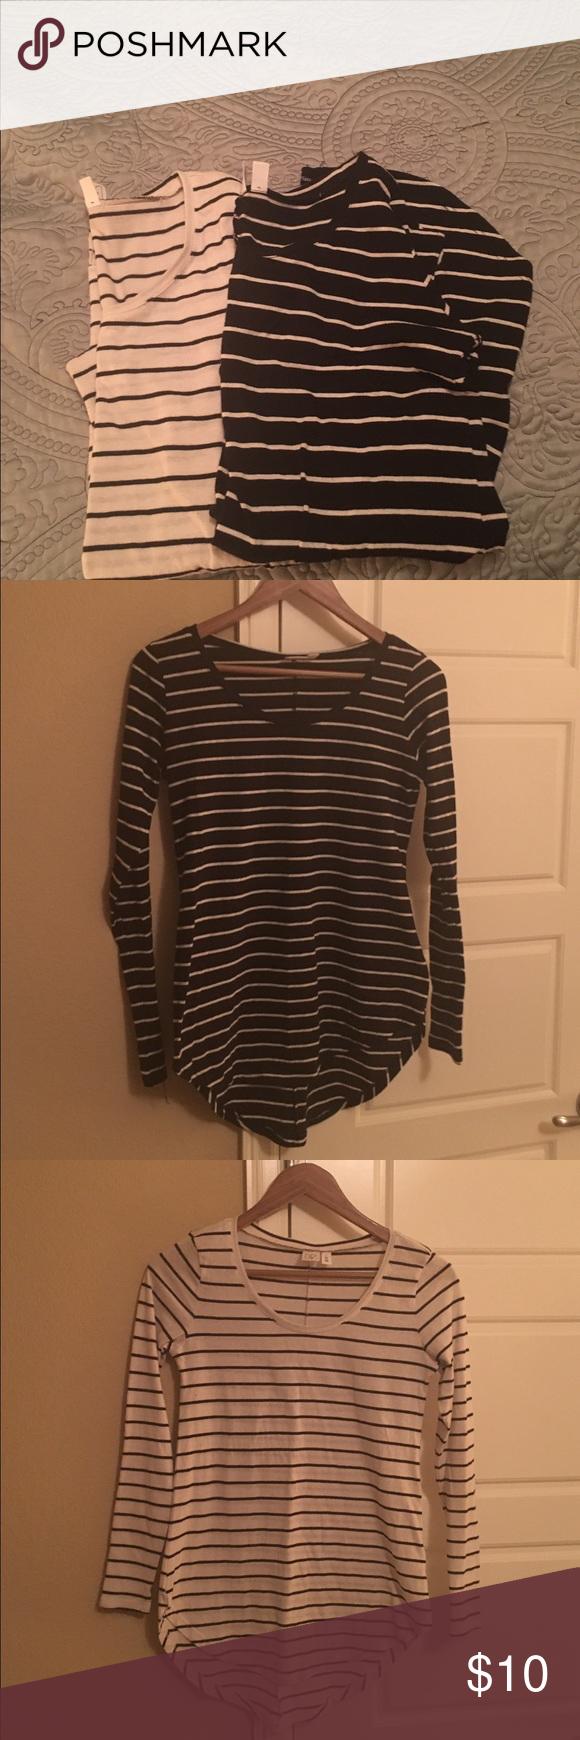 Two striped long sleeves T-shirts Black t-shirt with white stripes and white t-shirt with black stripes; both from Nordstrom; worn but in good condition - no rips, stains, or tears; both shirts have some pilling under the arms and along the sides of the body; the body of the shirts fit like a small but the arms are very tight Nordstrom Tops Tees - Long Sleeve